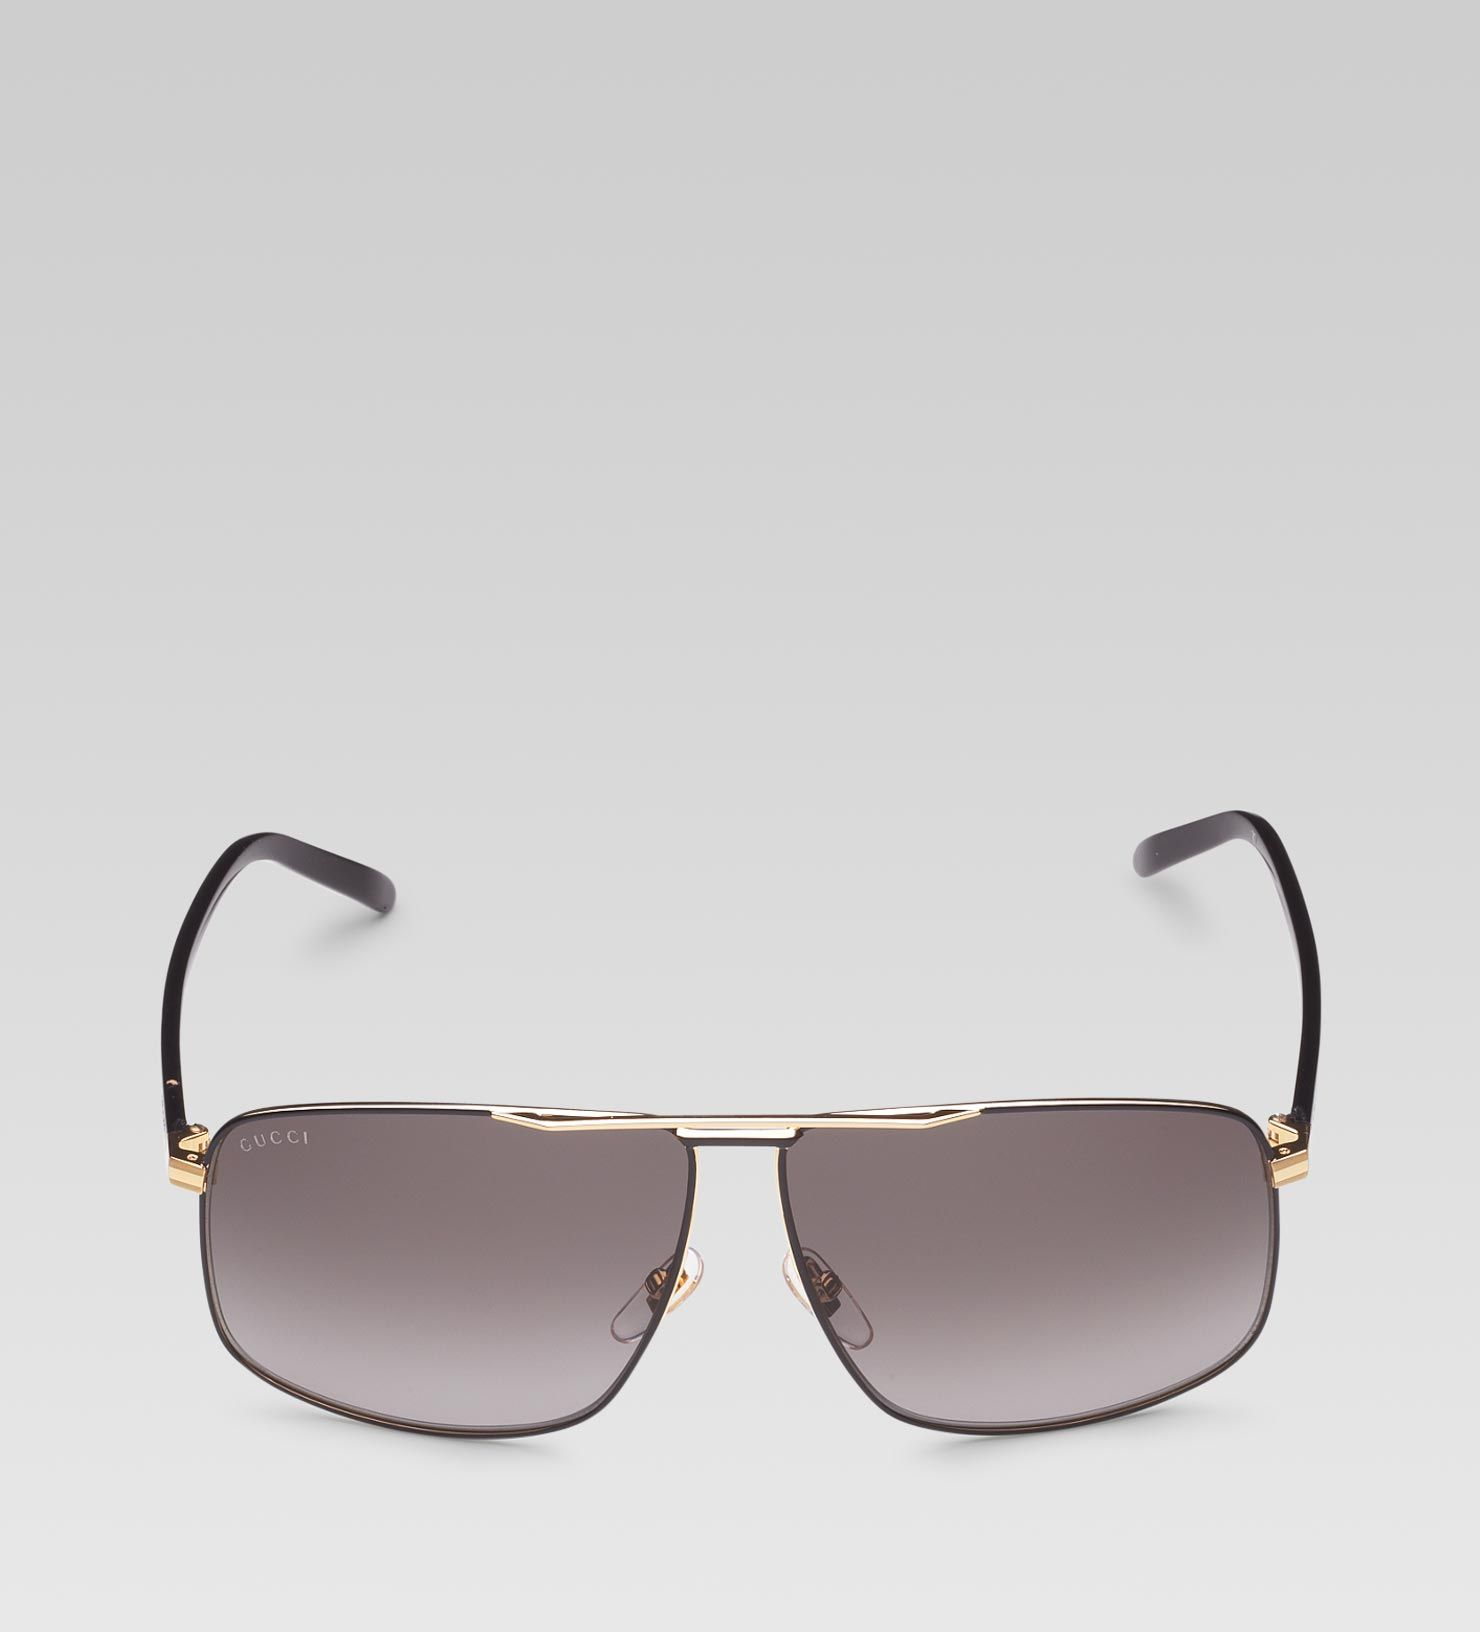 16d2aa88c Pin by Carlos Ruso on My Style | Gucci men, Mens sunglasses, Sunglasses